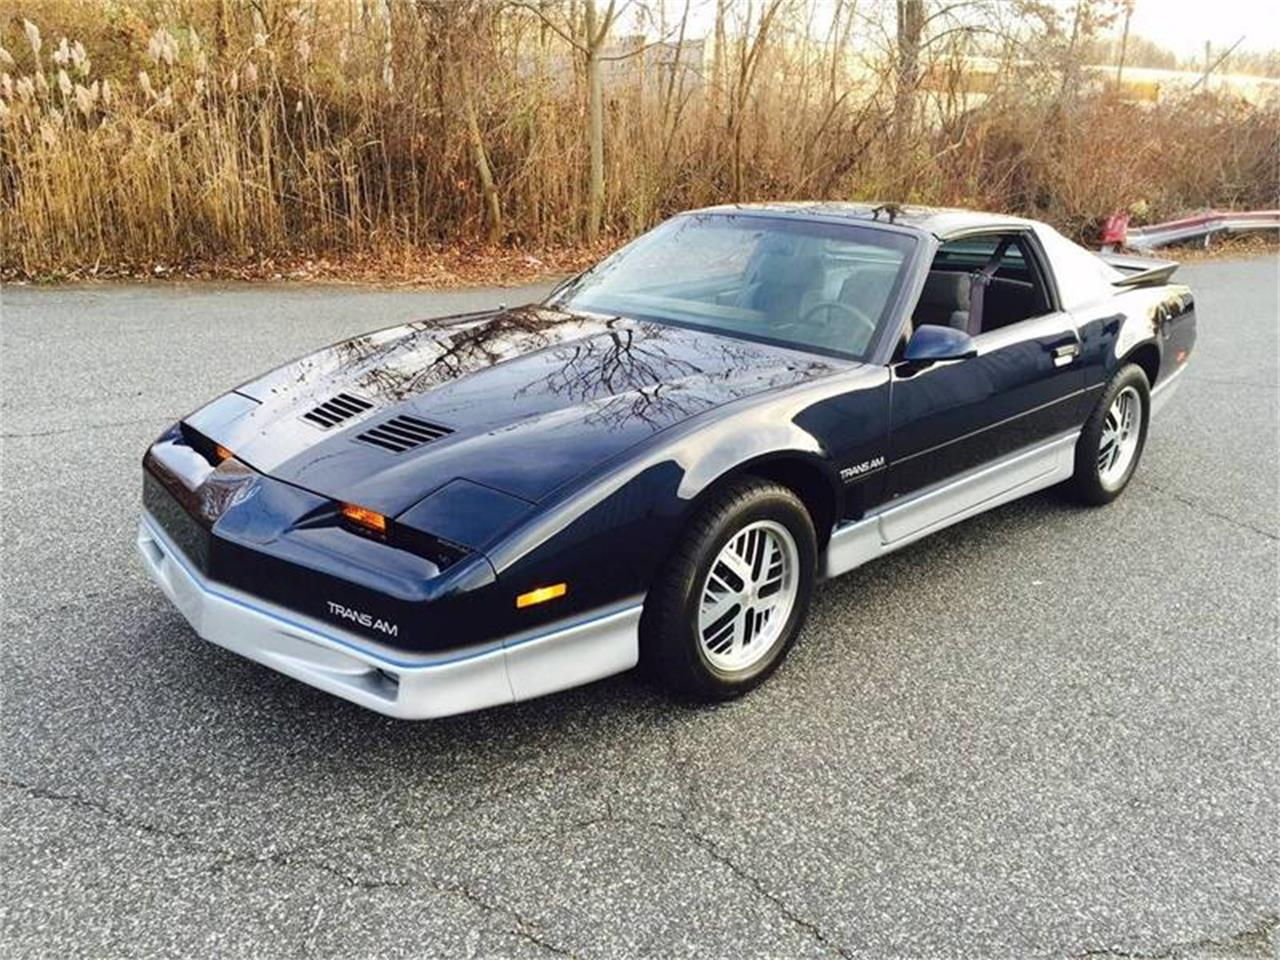 1986 pontiac firebird trans am for sale classiccars com cc 1198438 1986 pontiac firebird trans am for sale